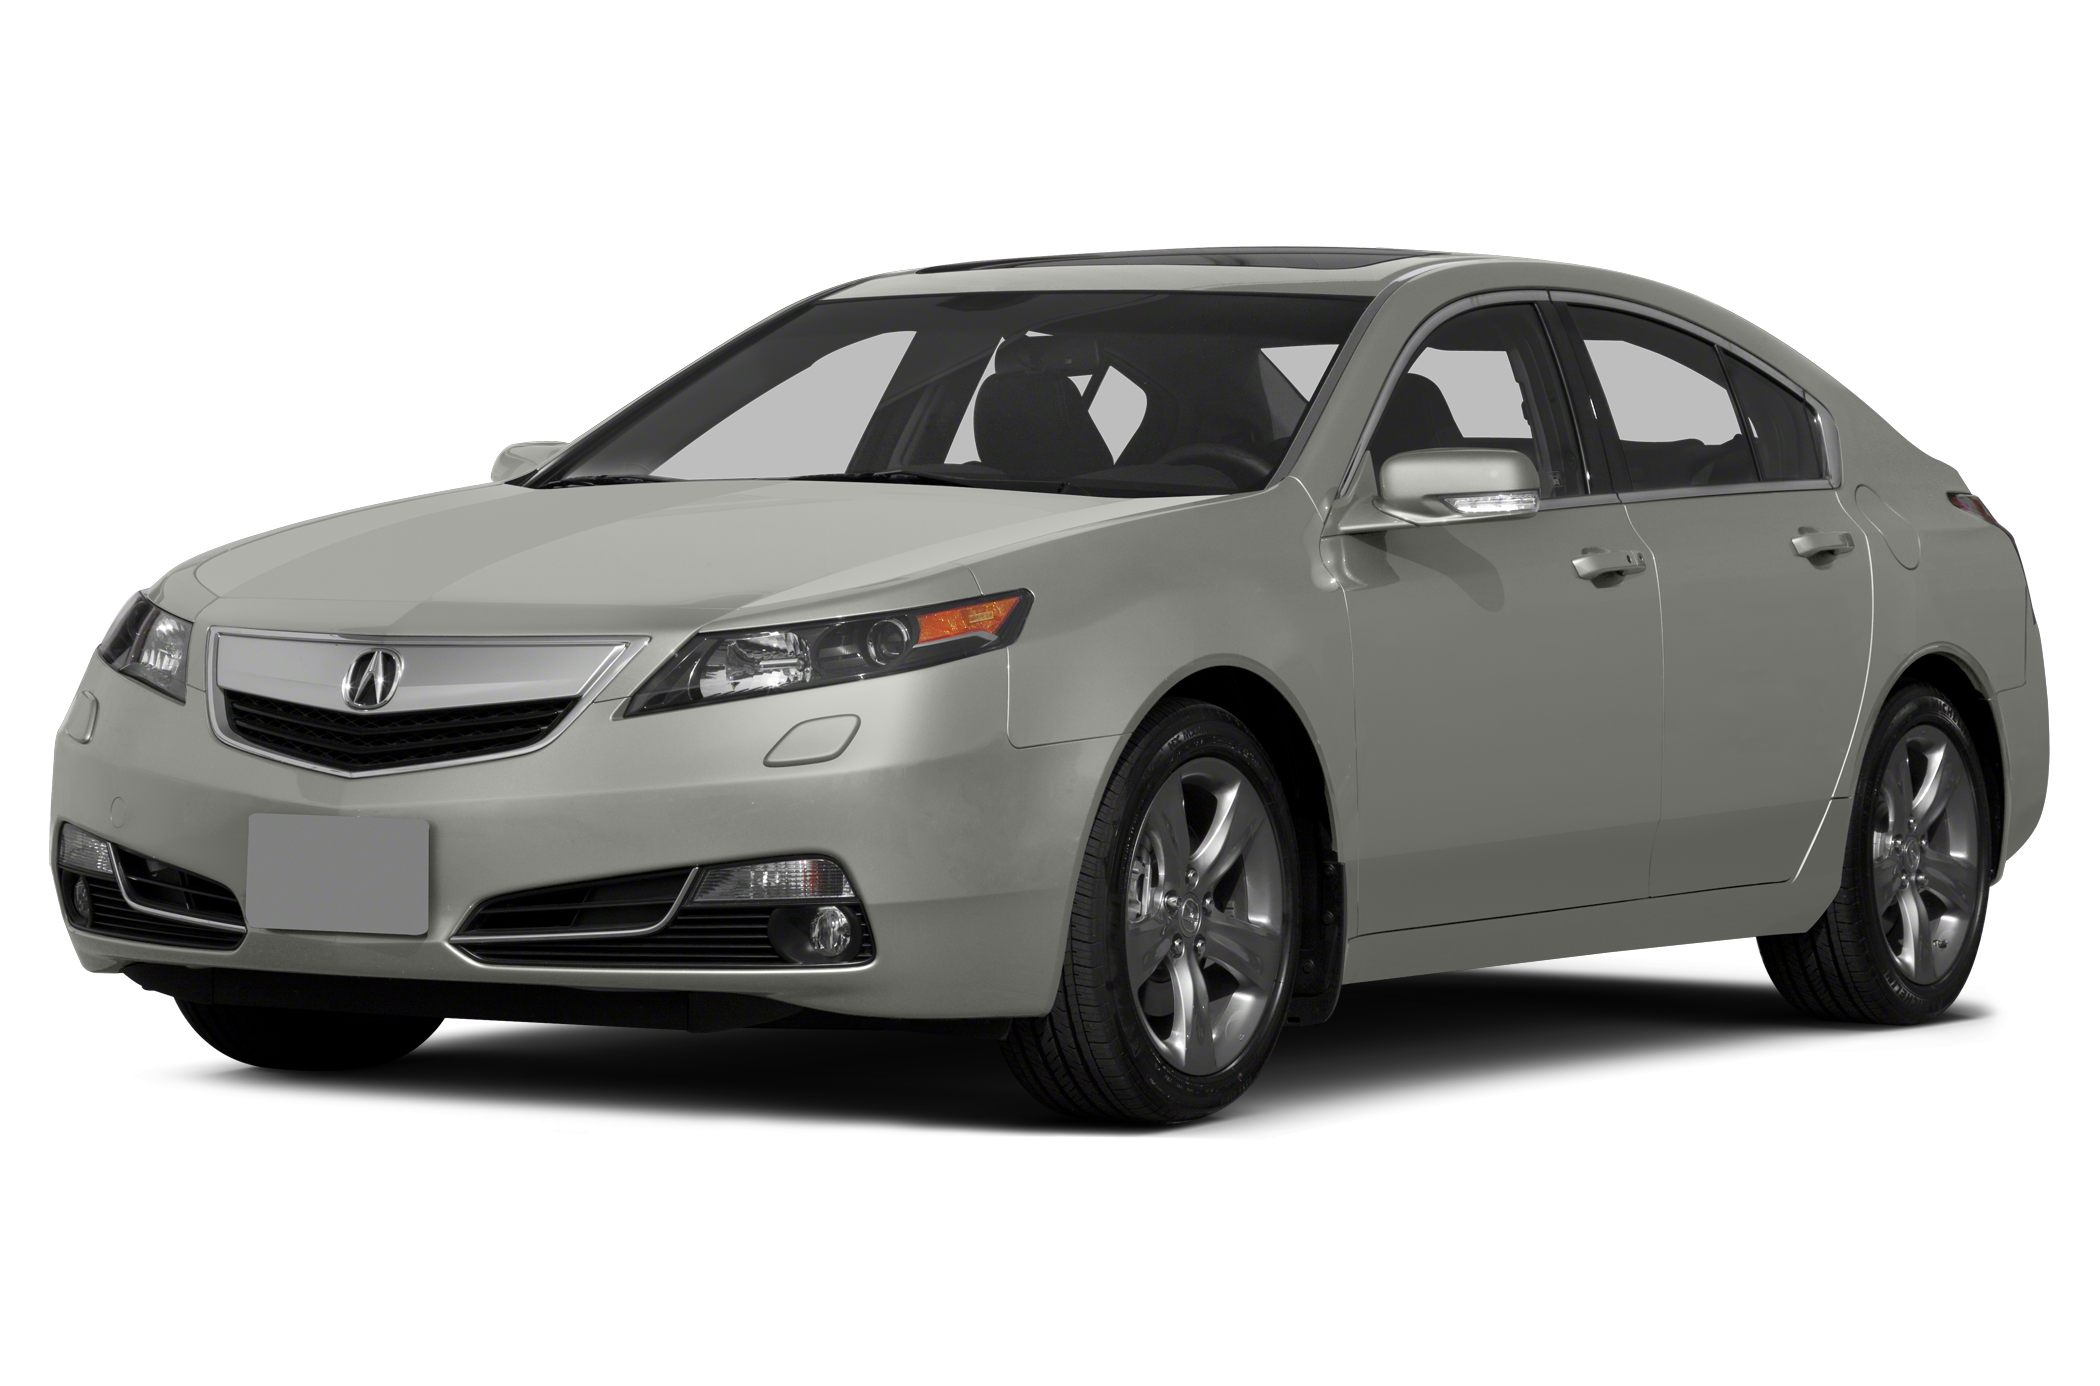 2014 Acura TL 35 Special Edition This particular One-Owner Special Edition TL is gorgeous Best i